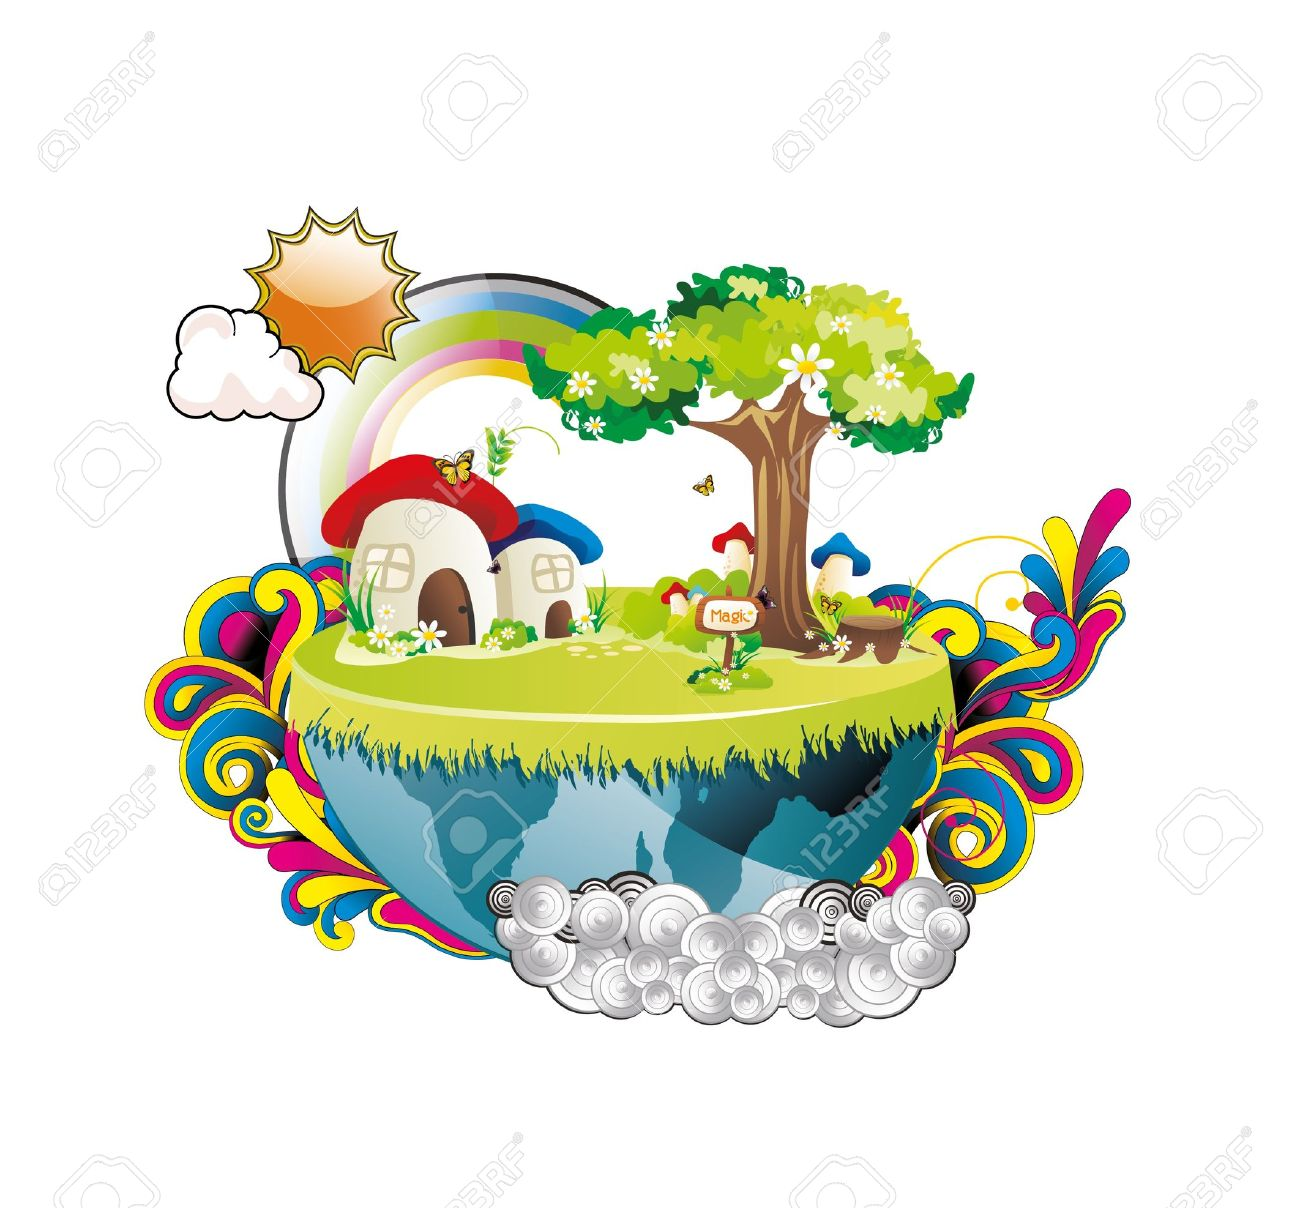 Landscape Planet Fantasy Royalty Free Cliparts, Vectors, And Stock.